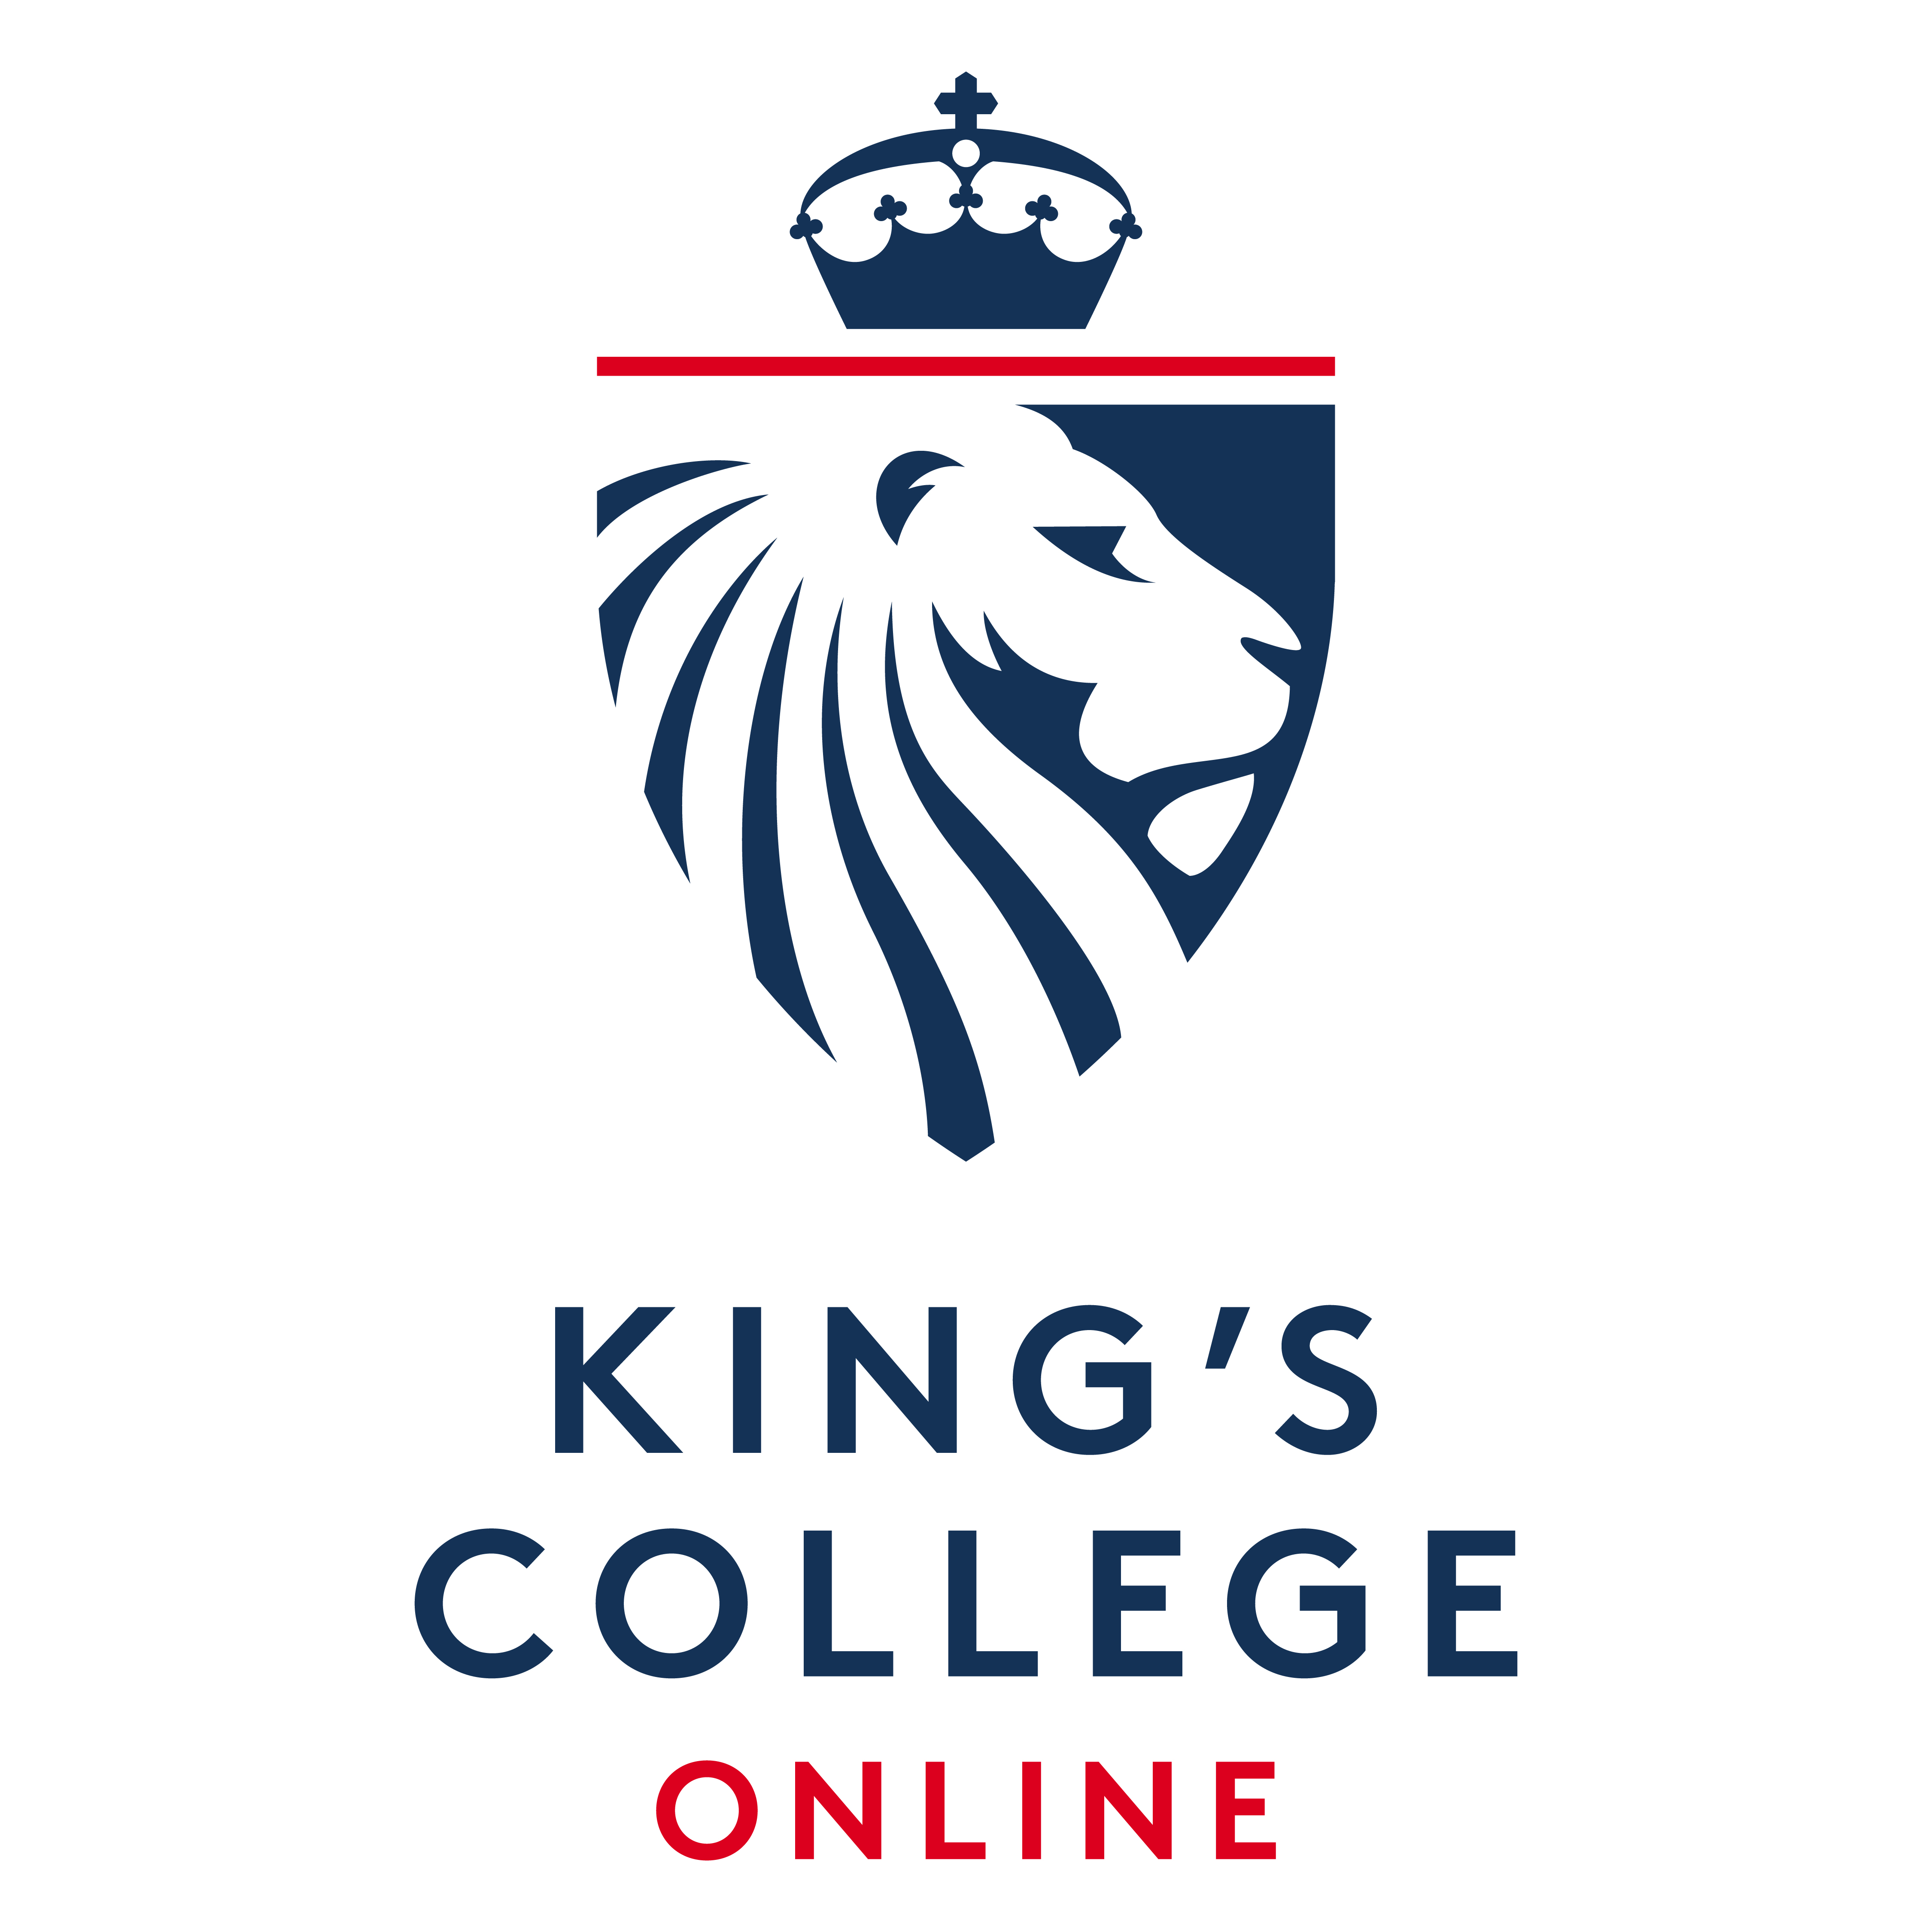 King's College Online